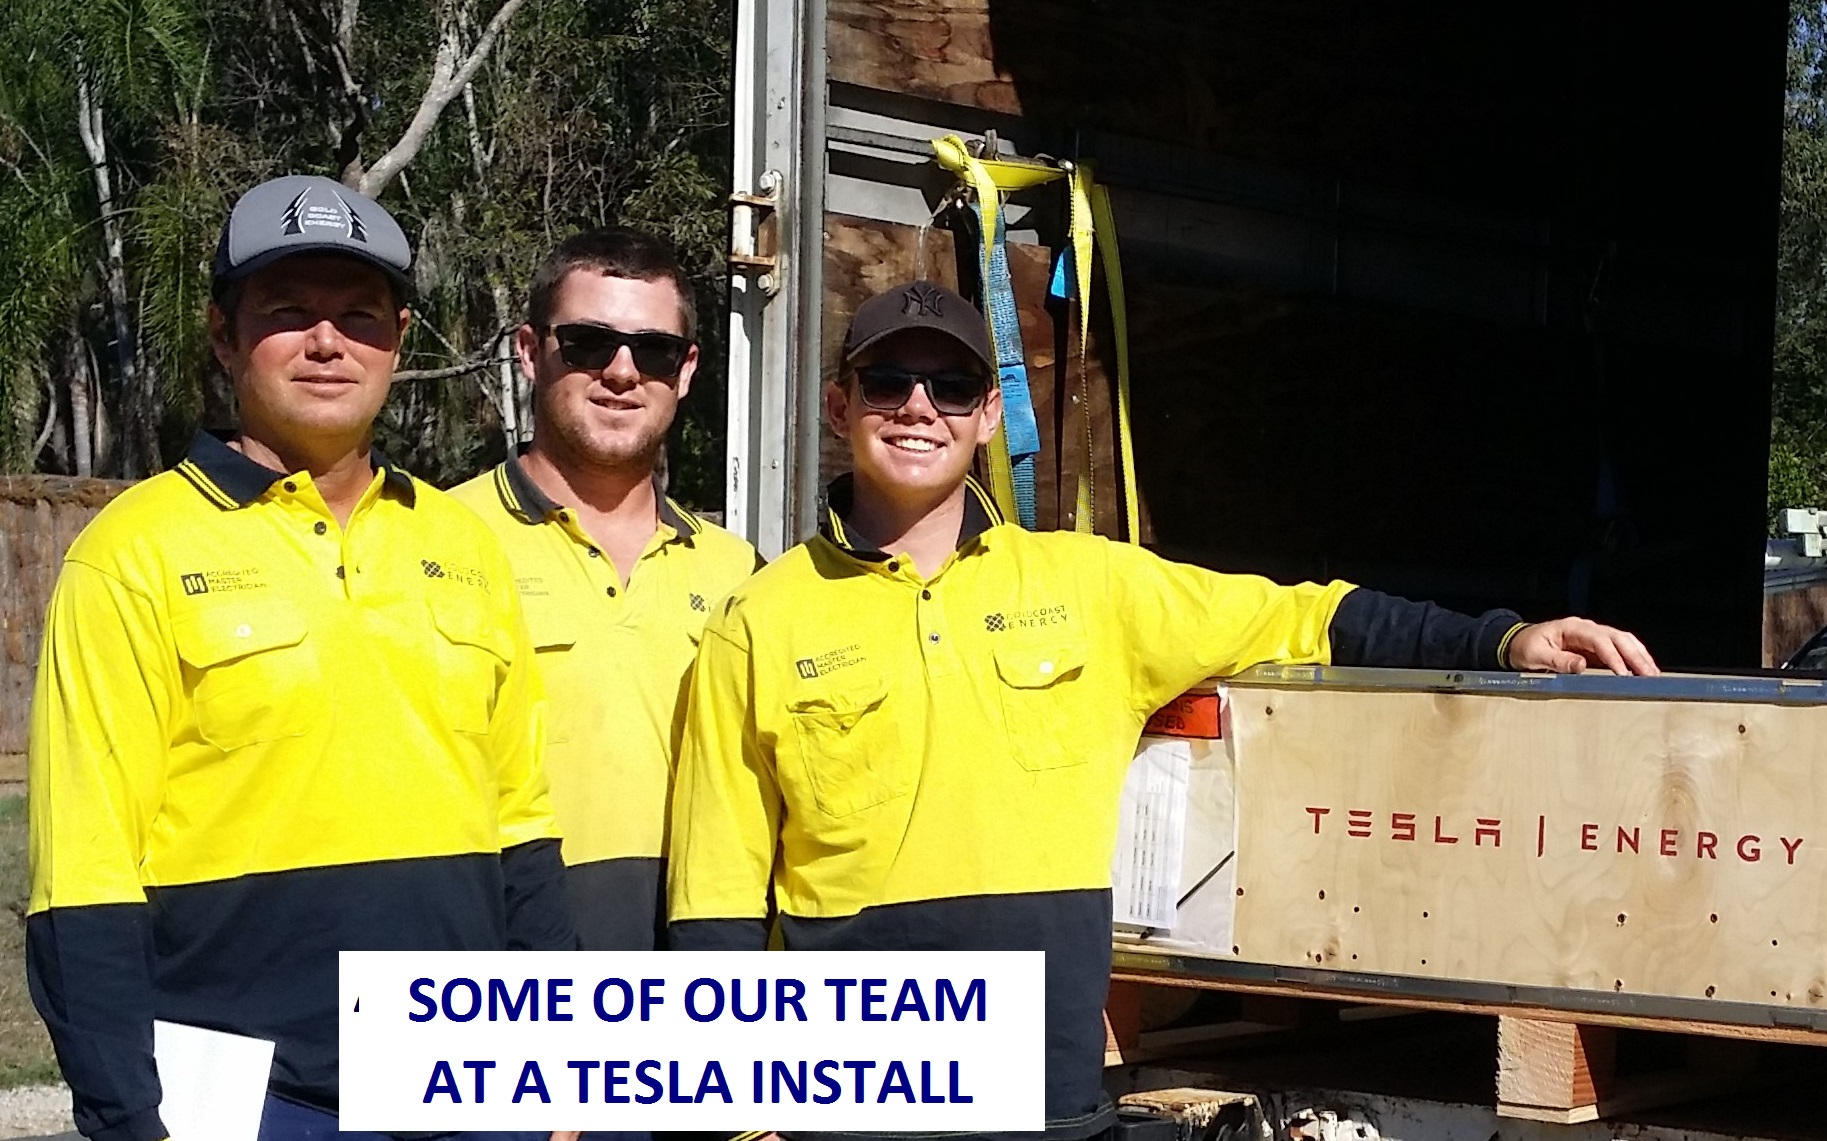 Gold Coast Energy Team tesla energy